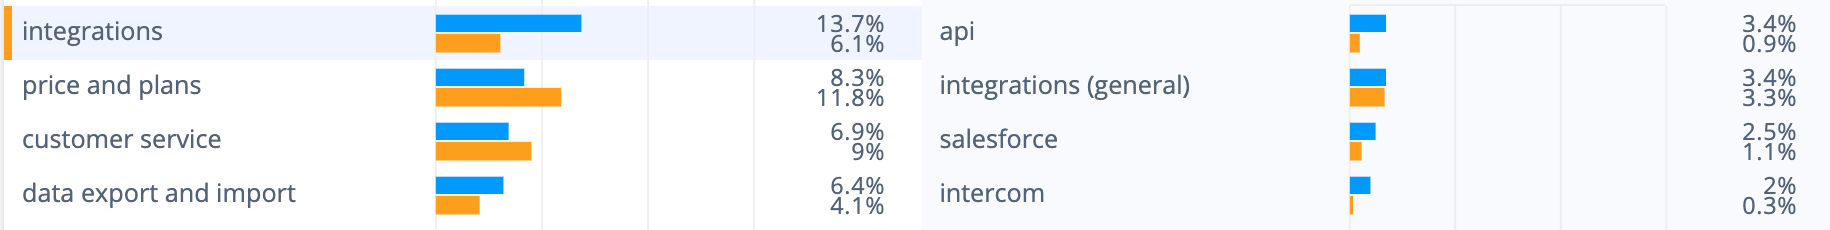 Wootric survey tool cons: It's API is unfavored by users